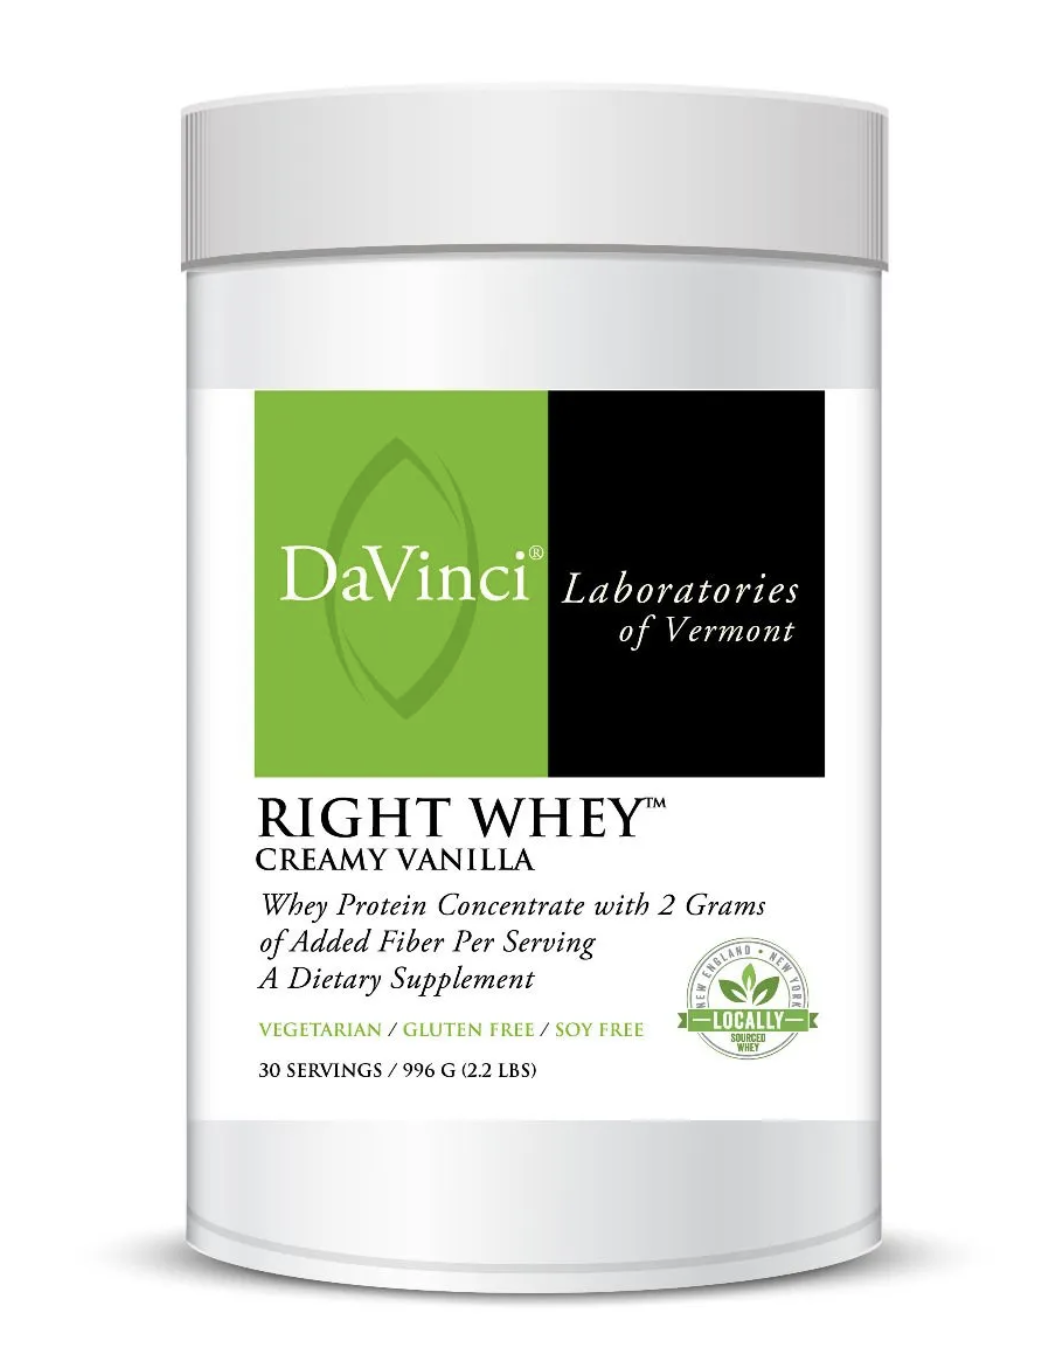 RIGHT WHEY CREAMY VANILLA DaVinci Laboratories 30 Servings